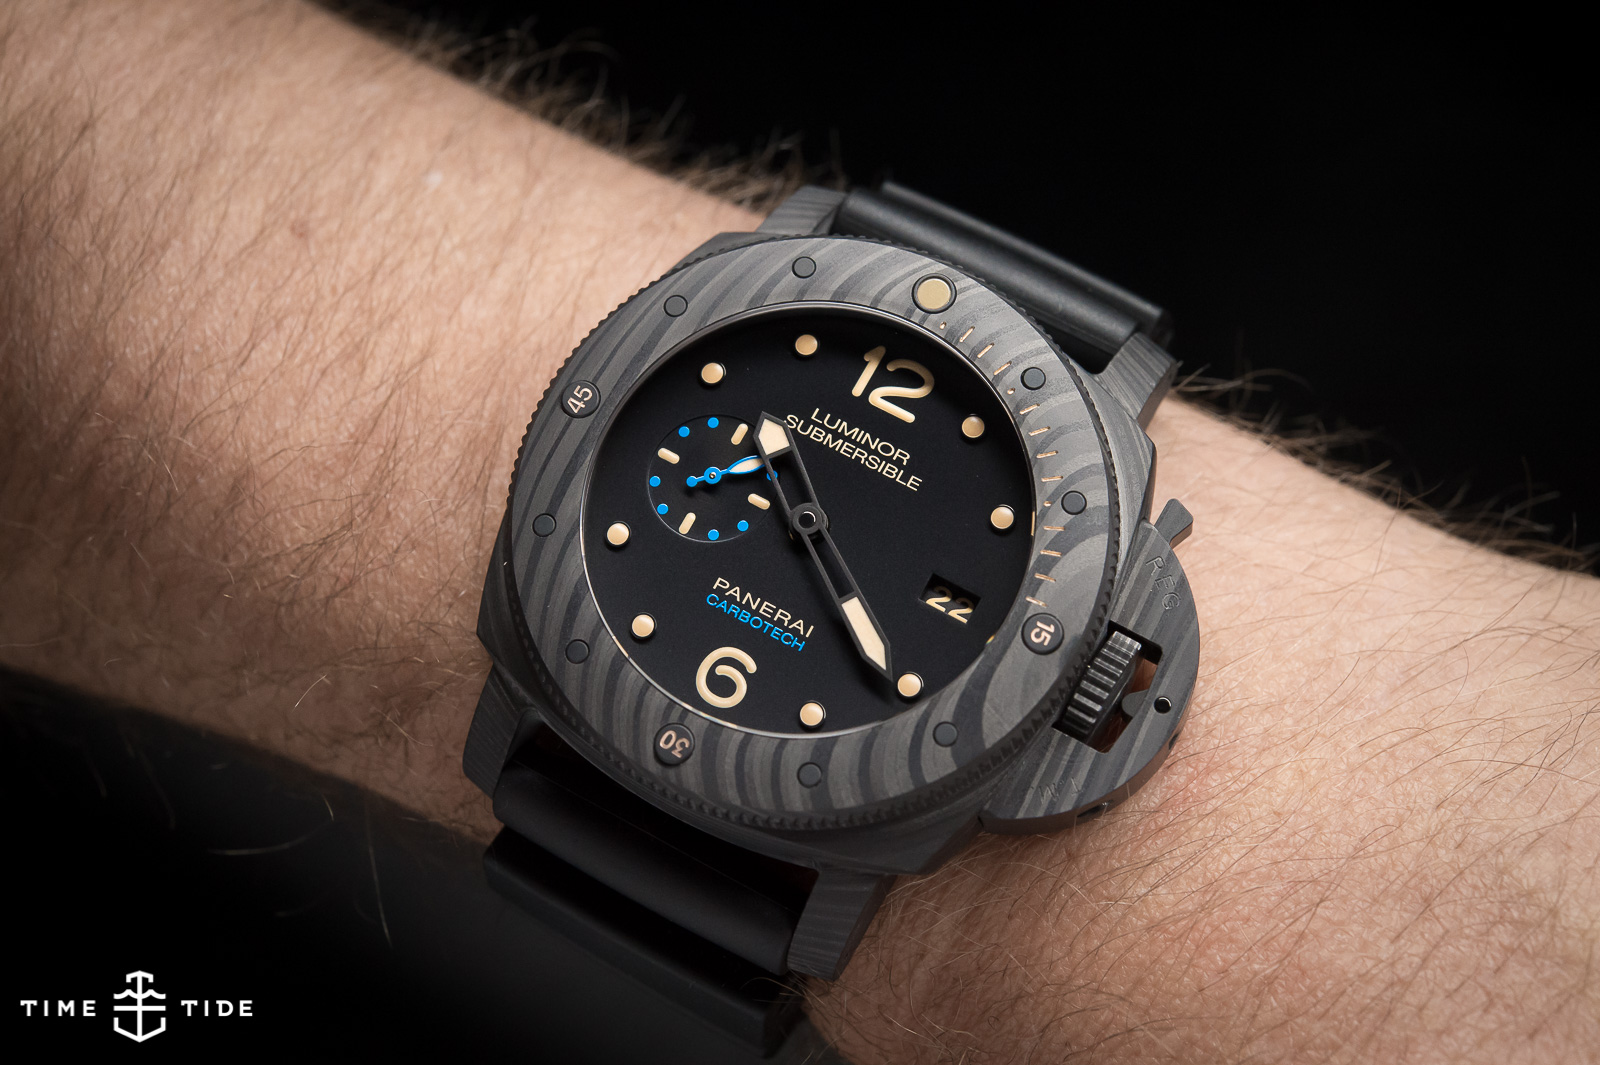 The Panerai Submersible 1950 Carbotech Pam00616